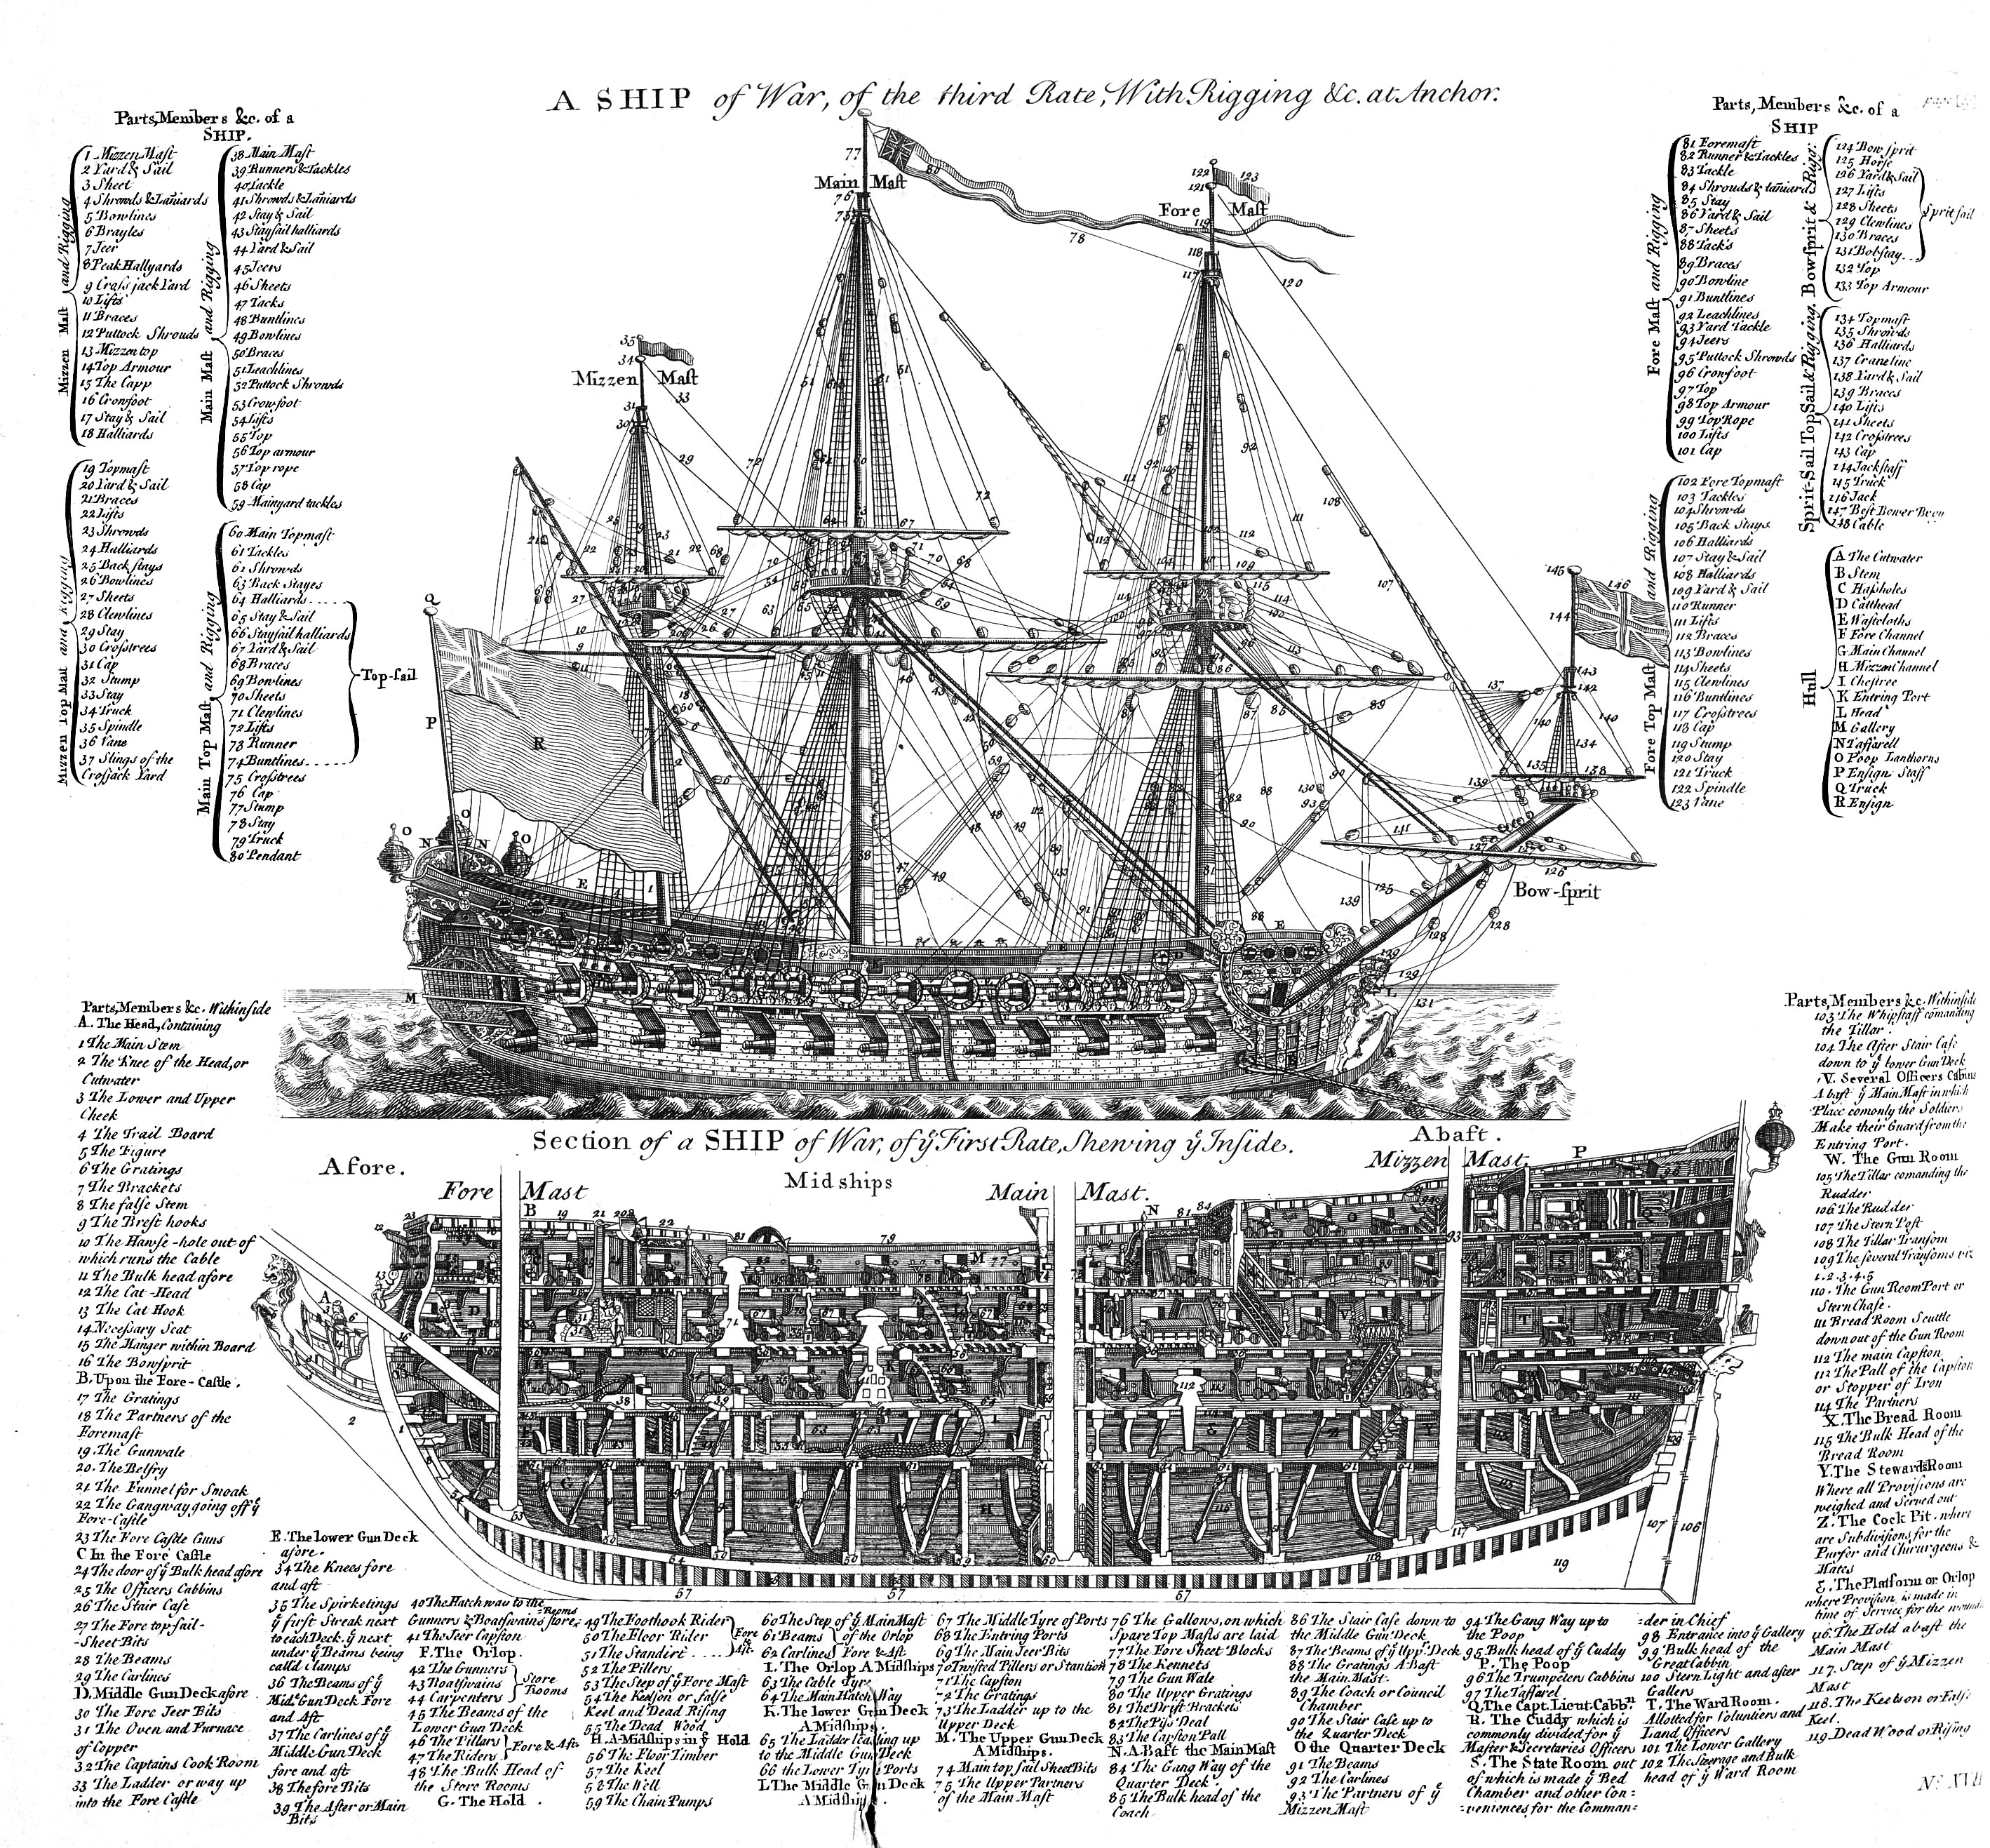 Sailing Ship Rigging Schematics http://commons.wikimedia.org/wiki/File:A_Ship_of_War,_Cyclopaedia,_1728,_Vol_2_edit.jpg